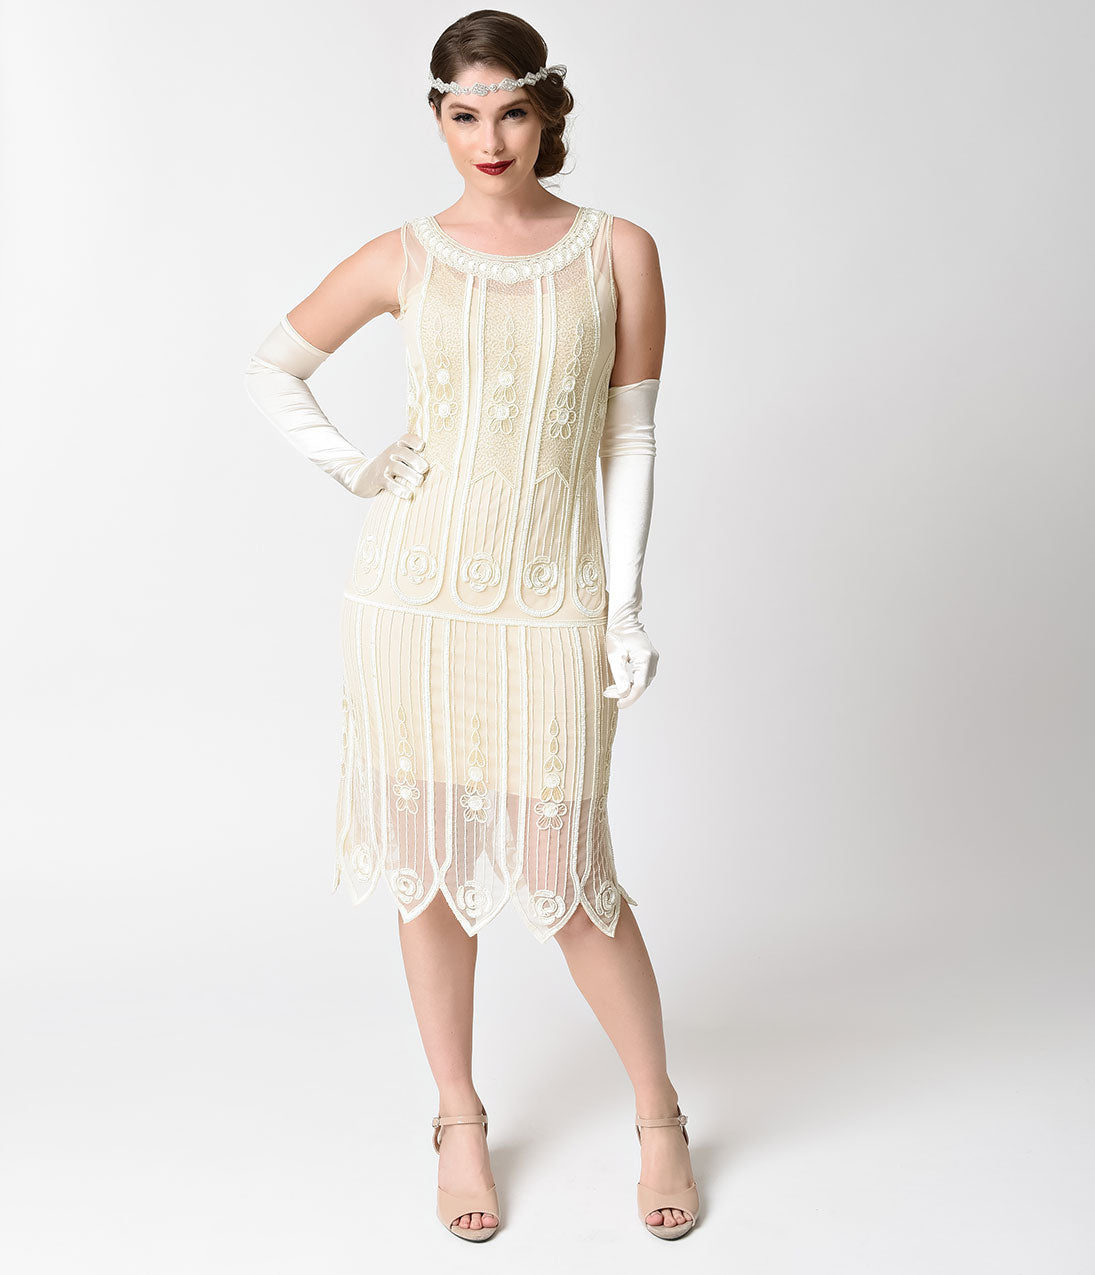 Vintage Inspired Wedding Dress | Vintage Style Wedding Dresses 1920s Steinway Flapper Dress $112.00 AT vintagedancer.com